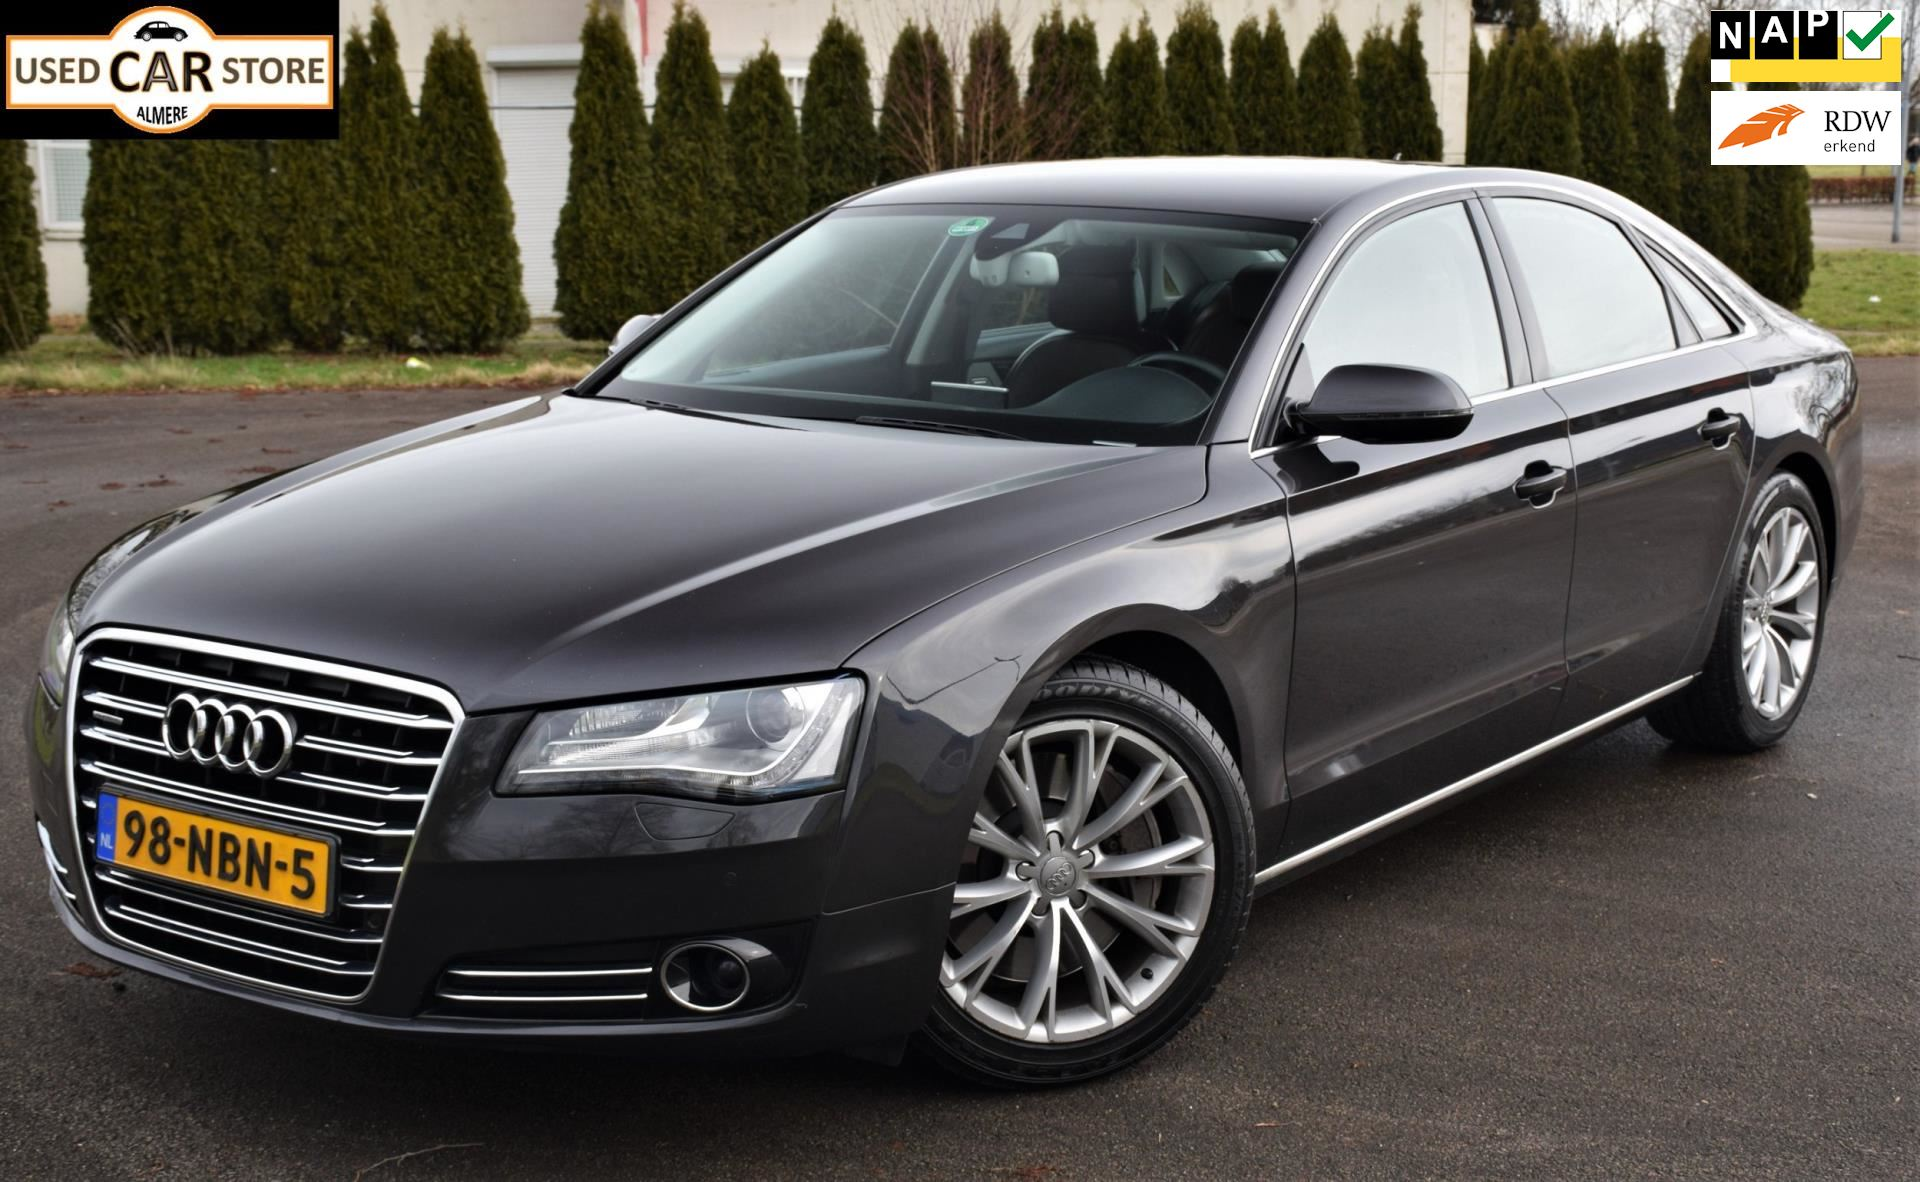 Audi A8 occasion - Used Car Store Almere